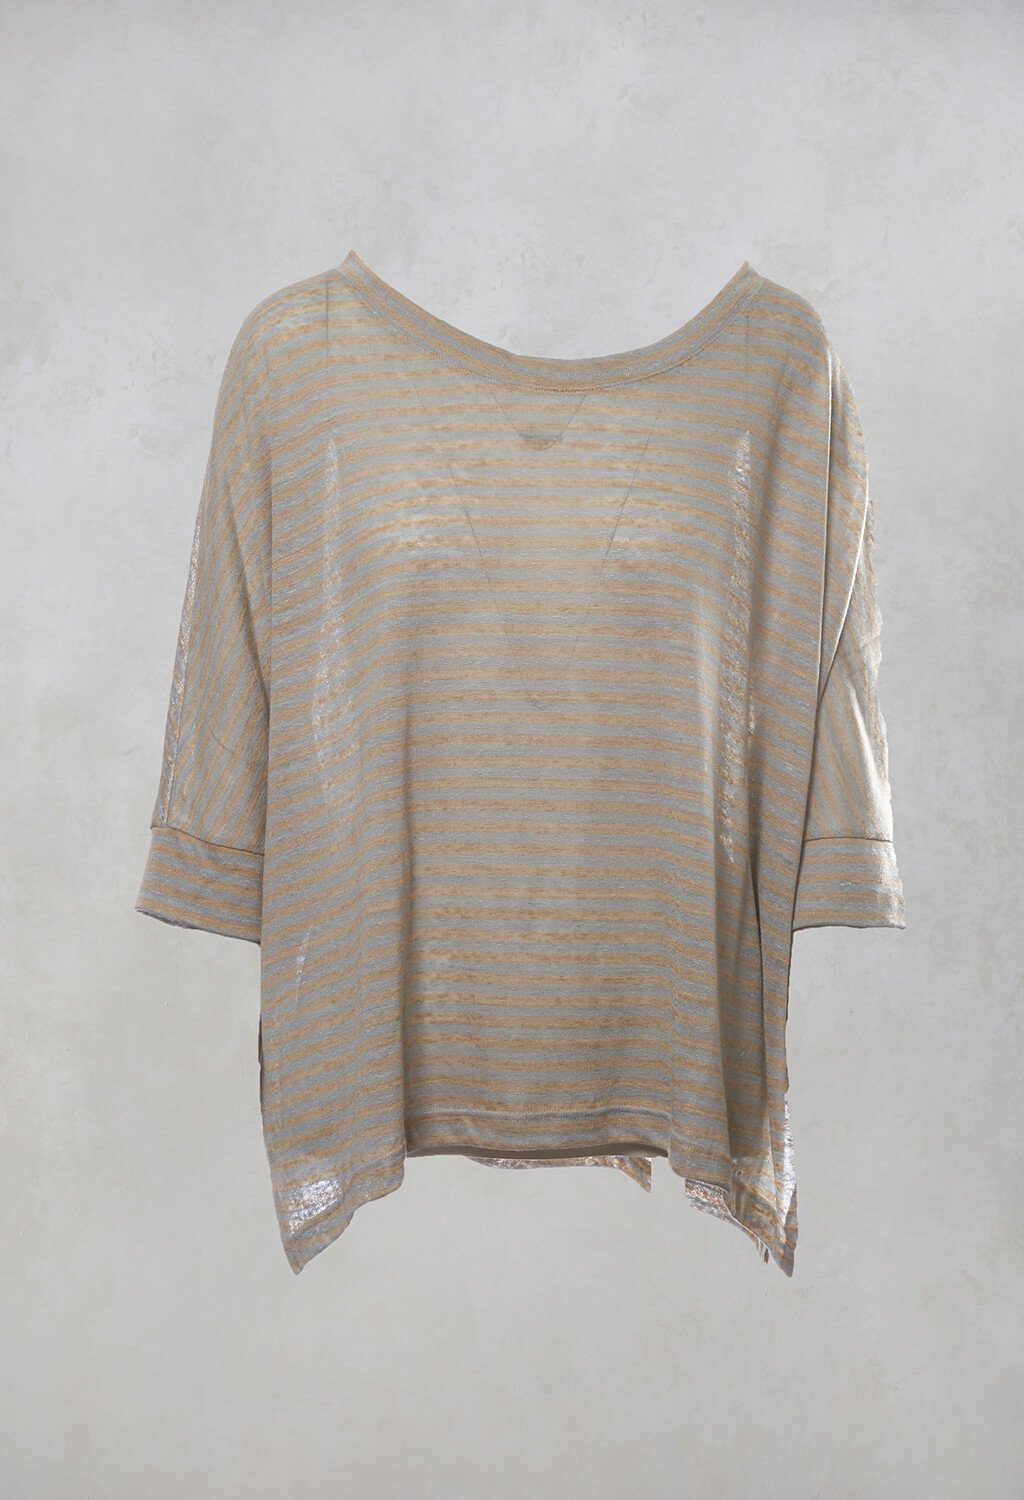 Lago Lino Jumper in Pale-Corda